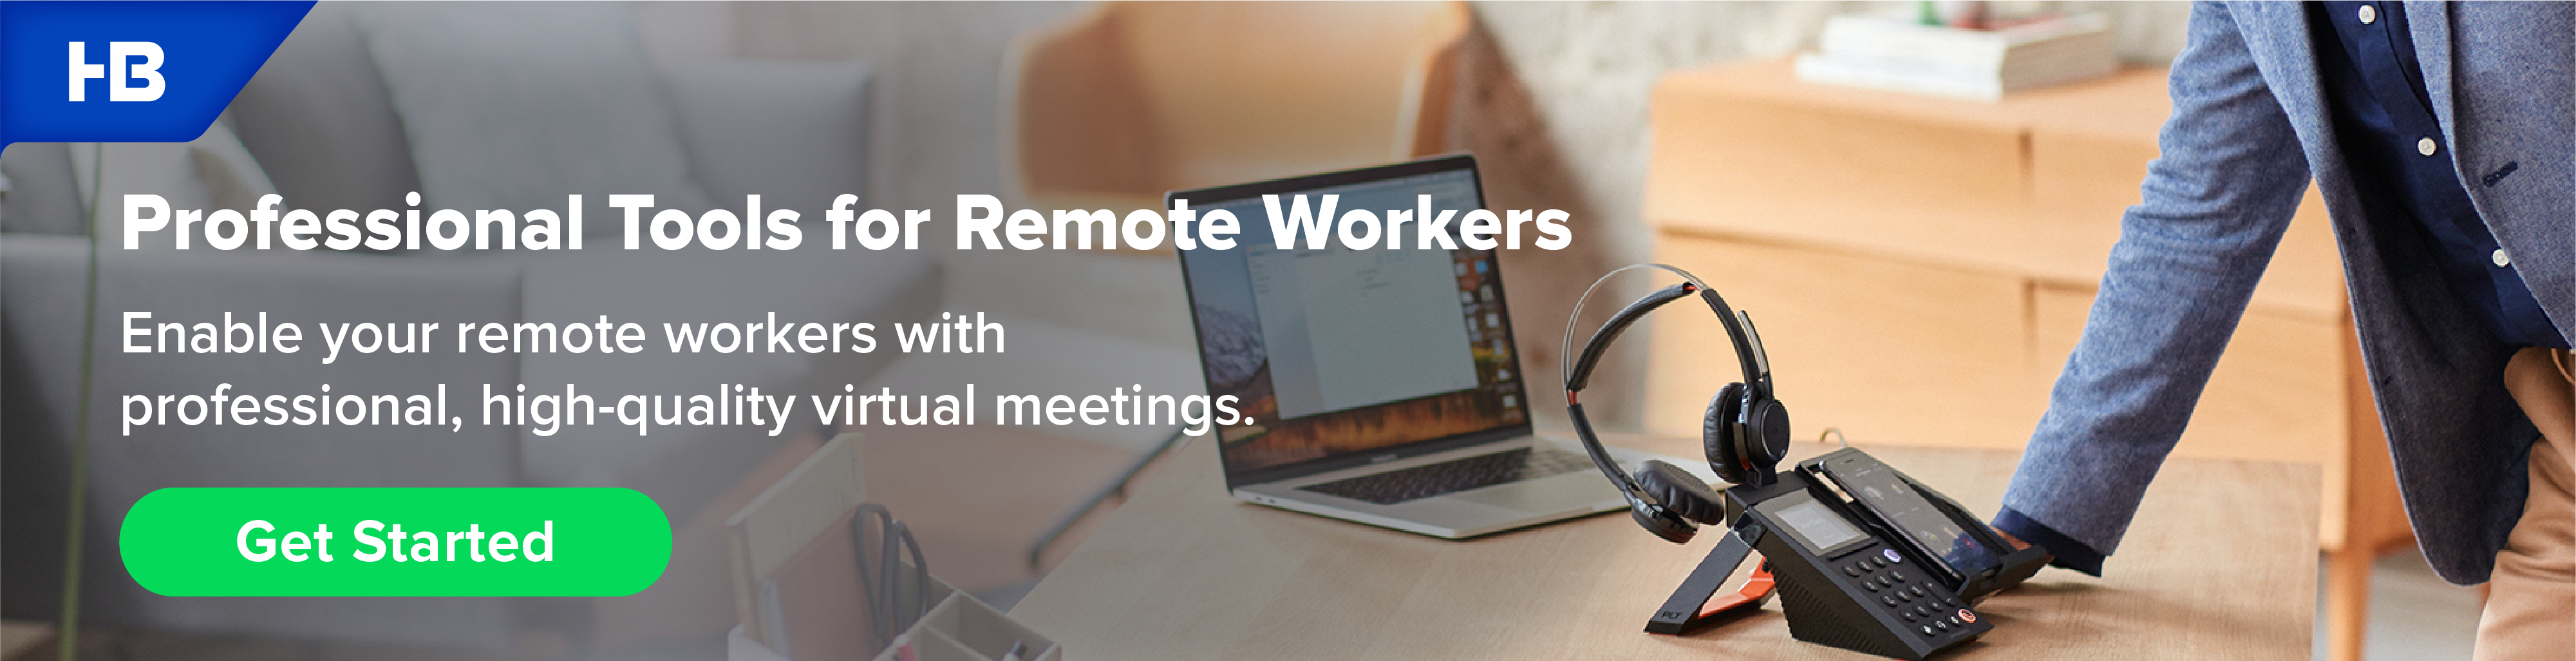 Remote_Worker_Enablement_Desktop-1